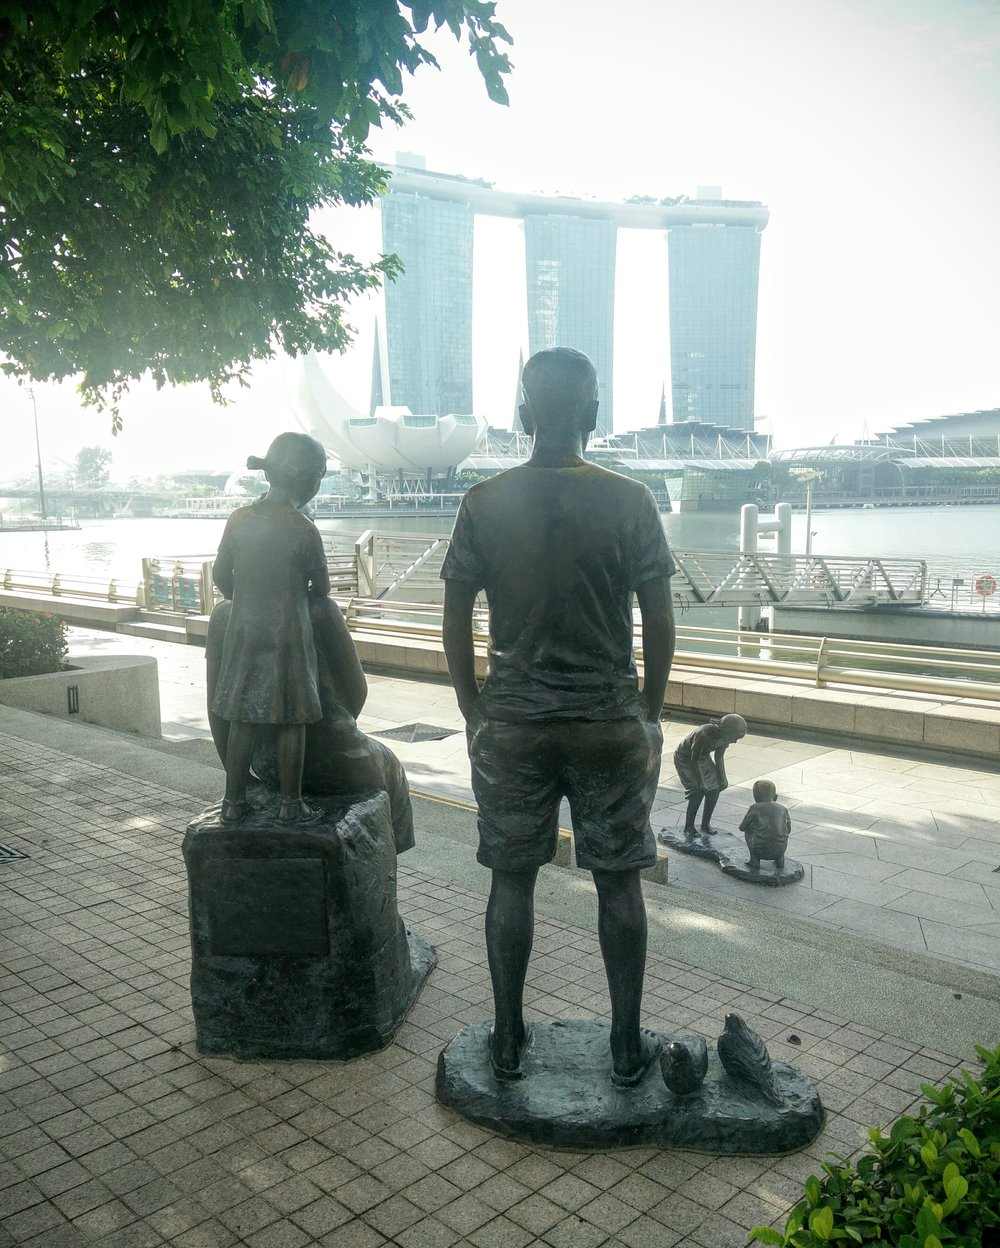 A nostalgic, 2014 commissioned sculpture by Lim Soo Ngee depicts a family enjoying a day on the Esplanade waterfront area.